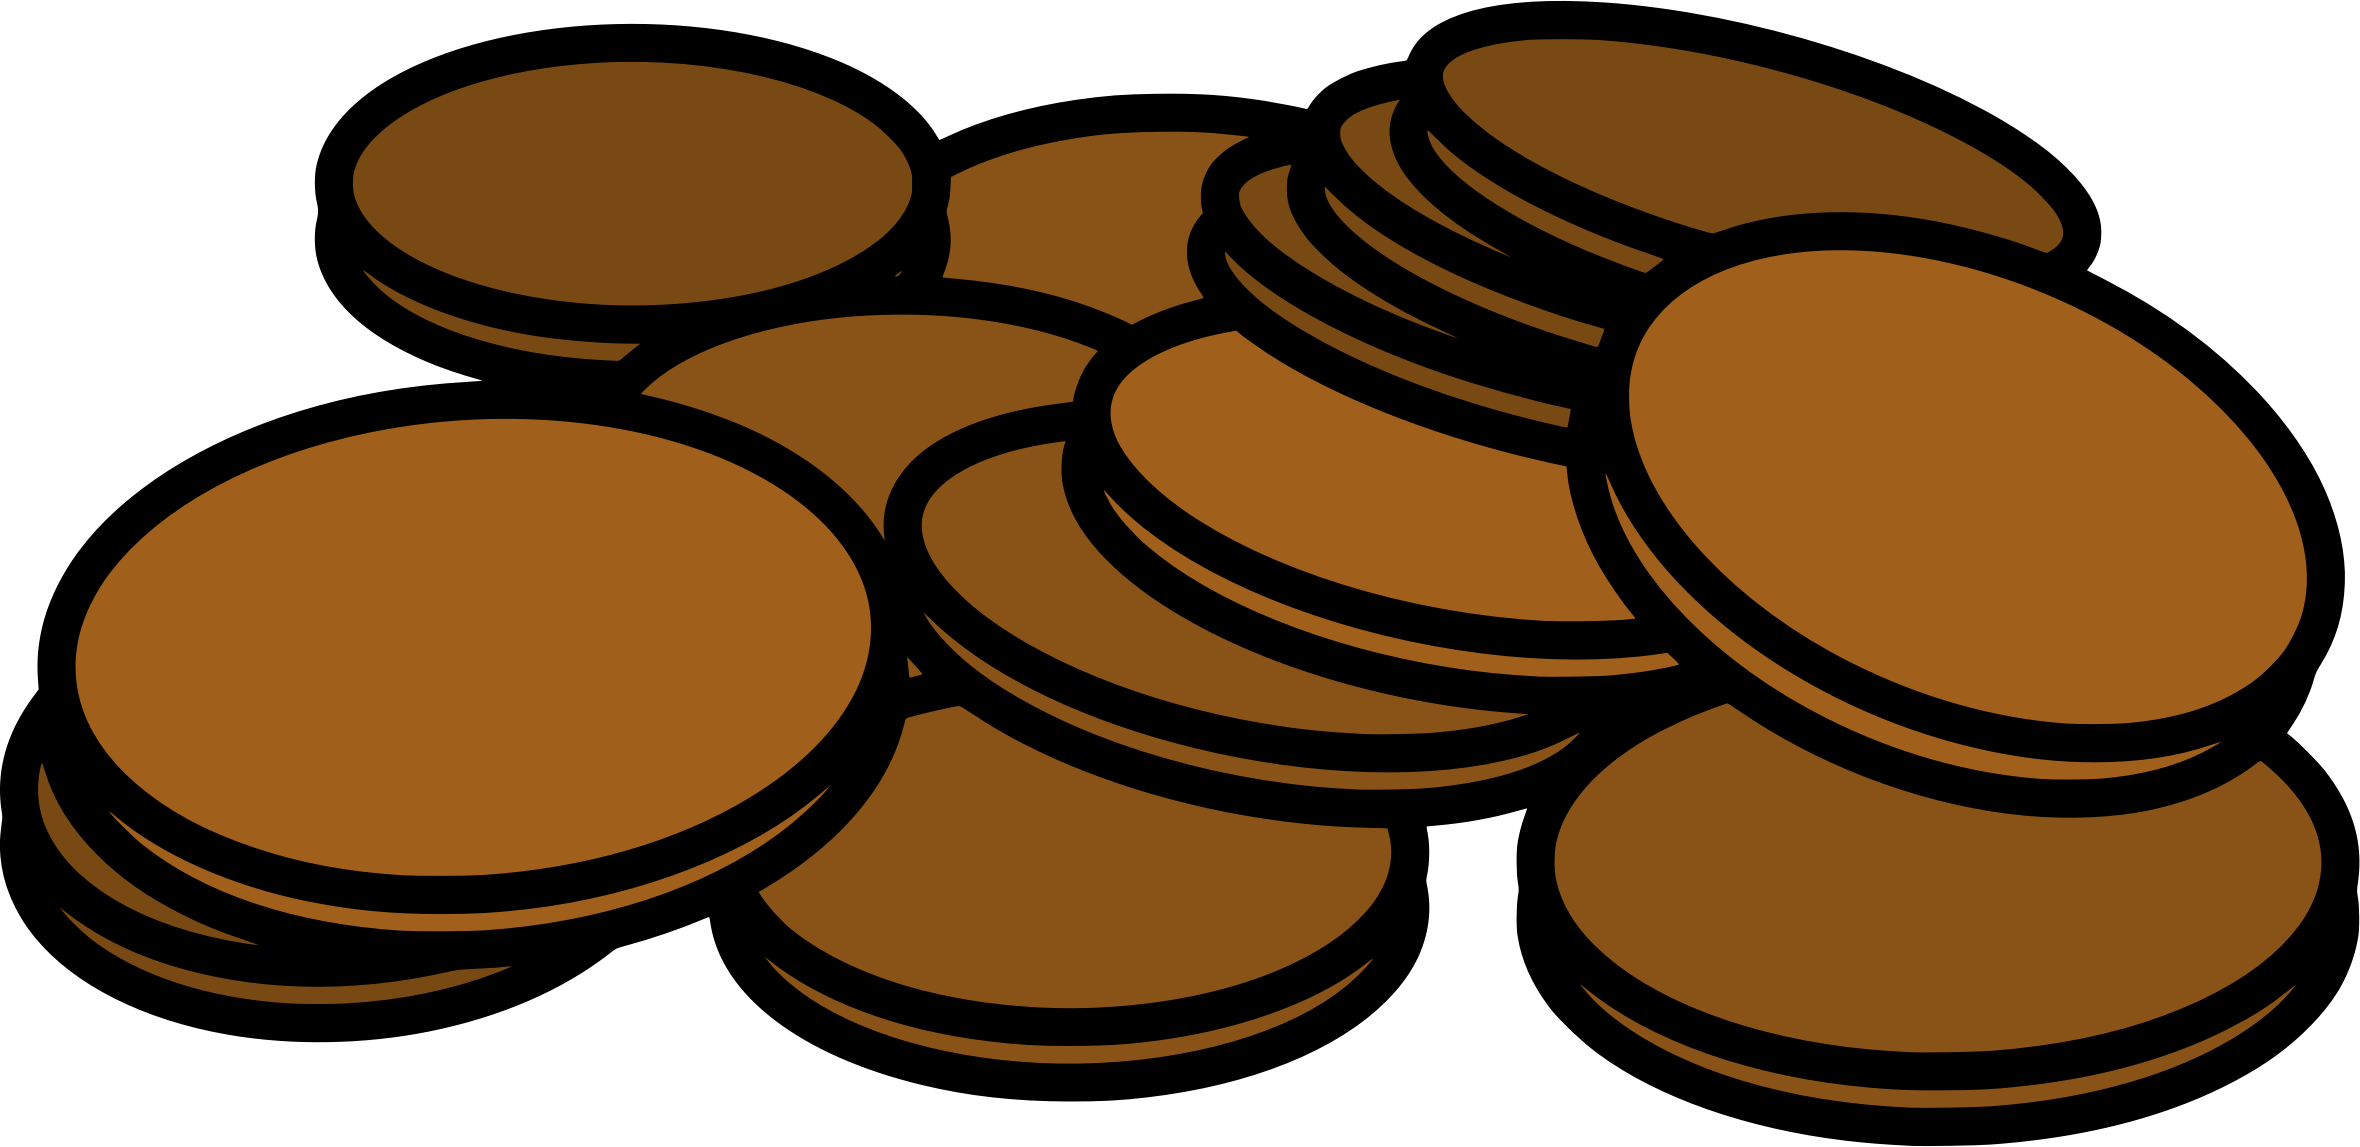 Pennies big image png. Proud clipart penny